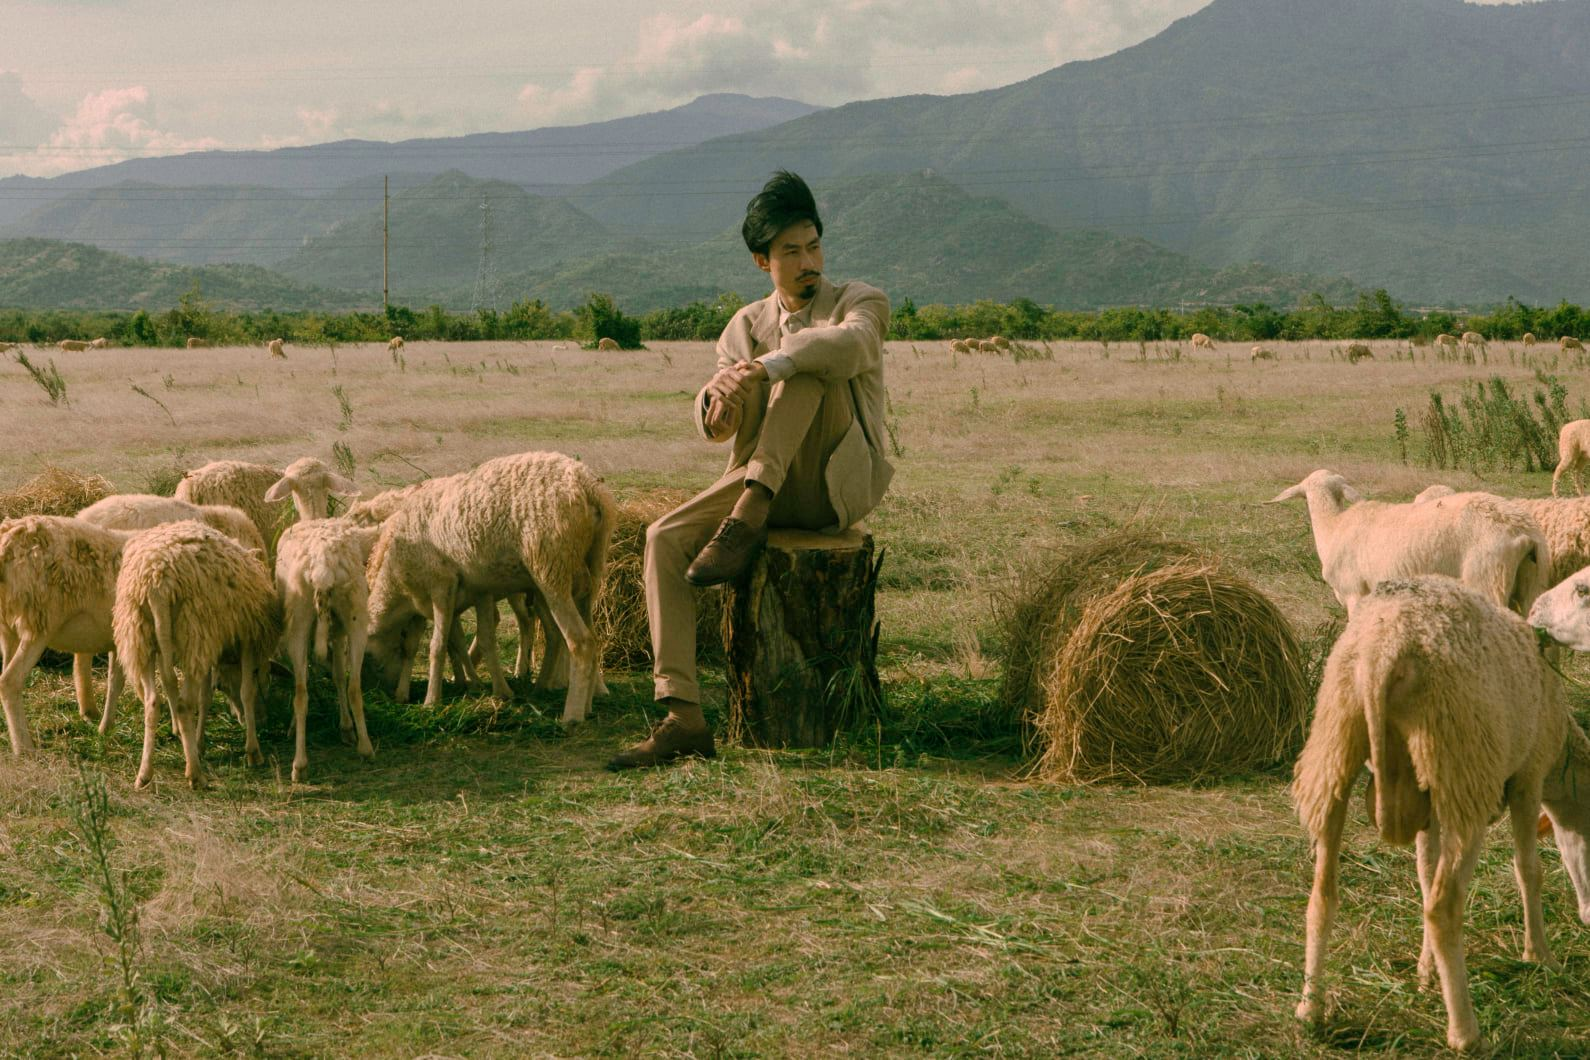 In the MV, directed by Thanh Dong, Den Vau plays a tree, witnessing the growth of a girl, who later becomes a woman and falls in love. Photo courtesy of Den Vau.